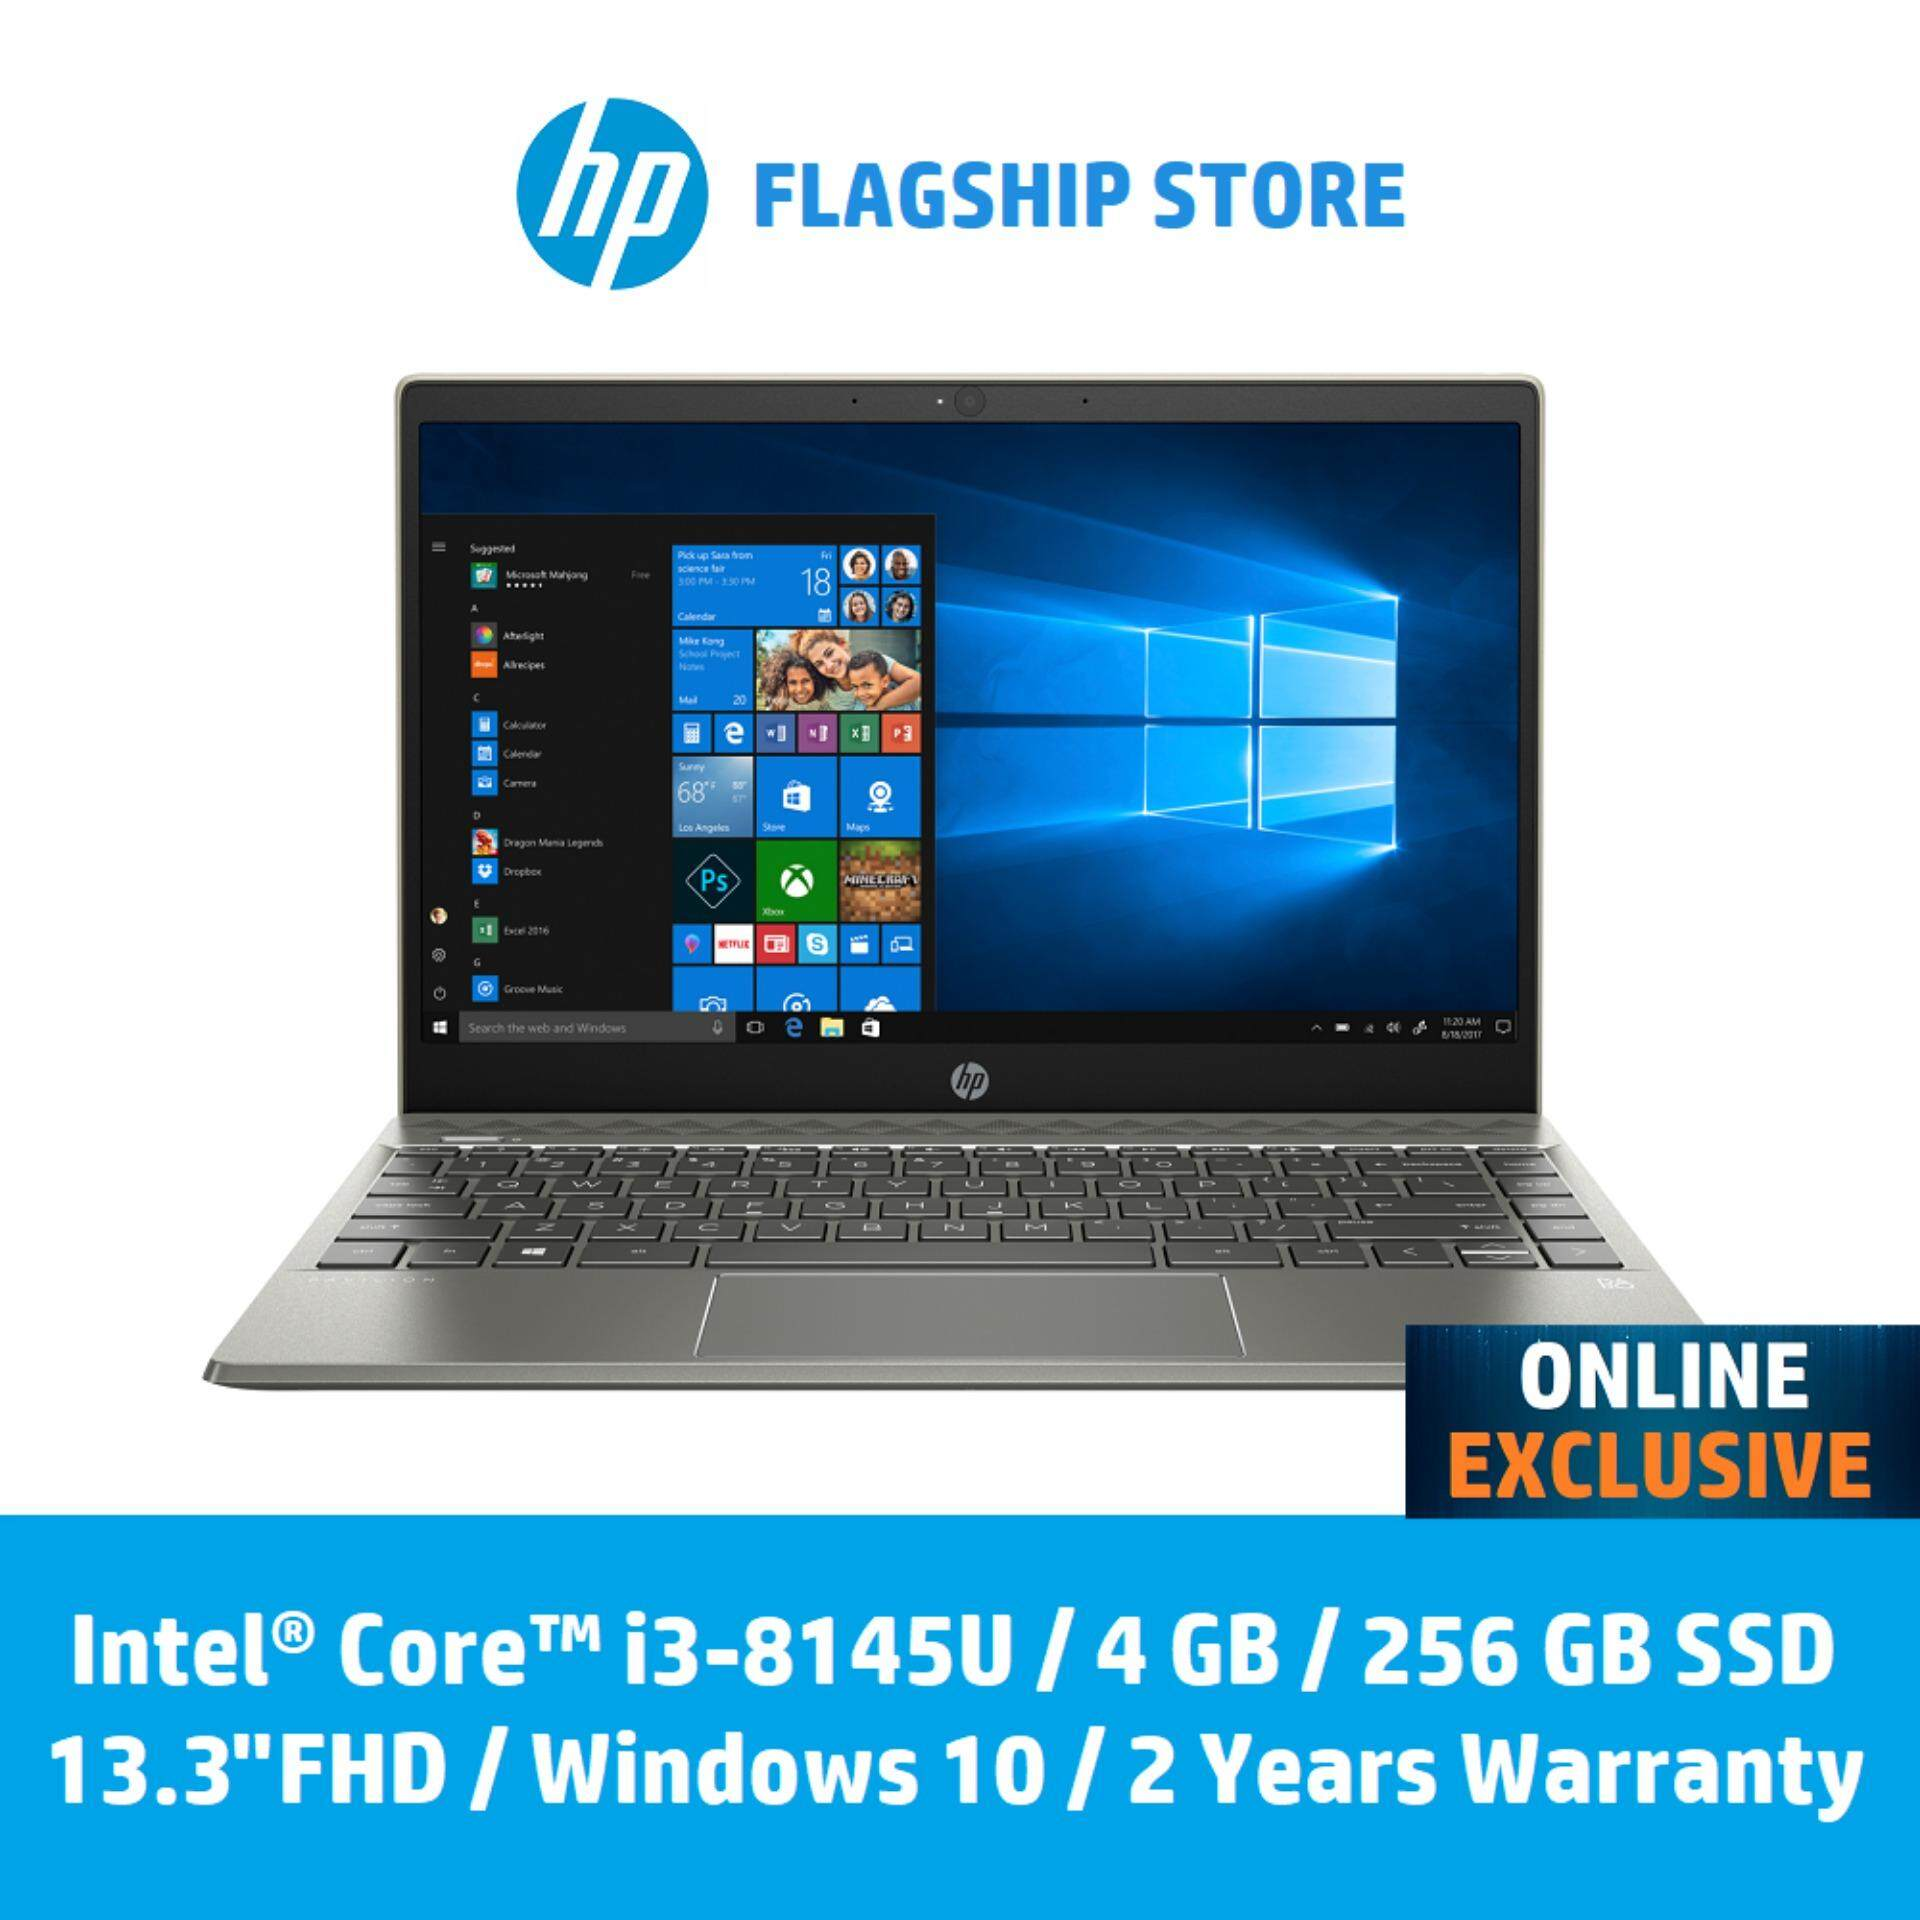 HP Pavilion 13-an0057tu Laptop **ONLINE EXCLUSIVE** [FREE Delivery & Backpack] Malaysia